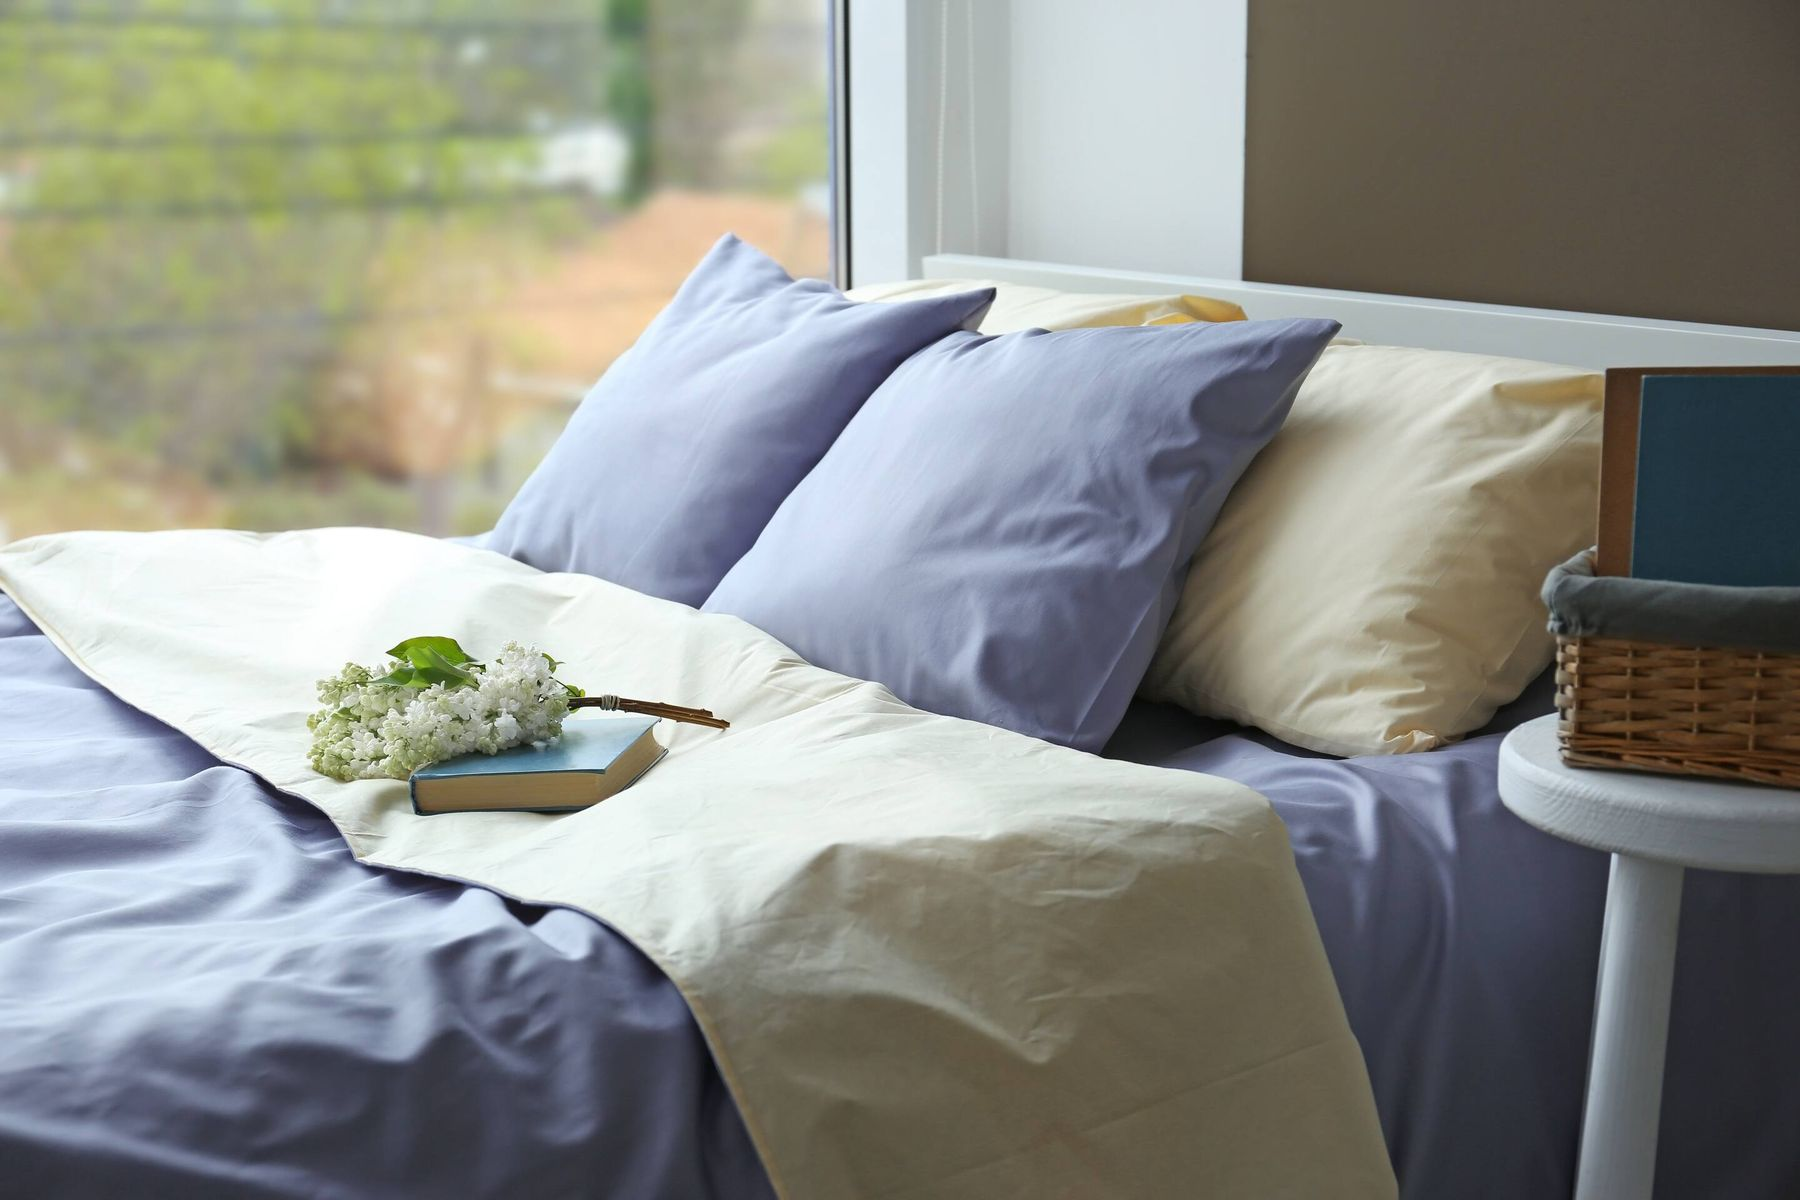 How to Clean Your Smelly Duvet & Bedsheets - Cleanipedia